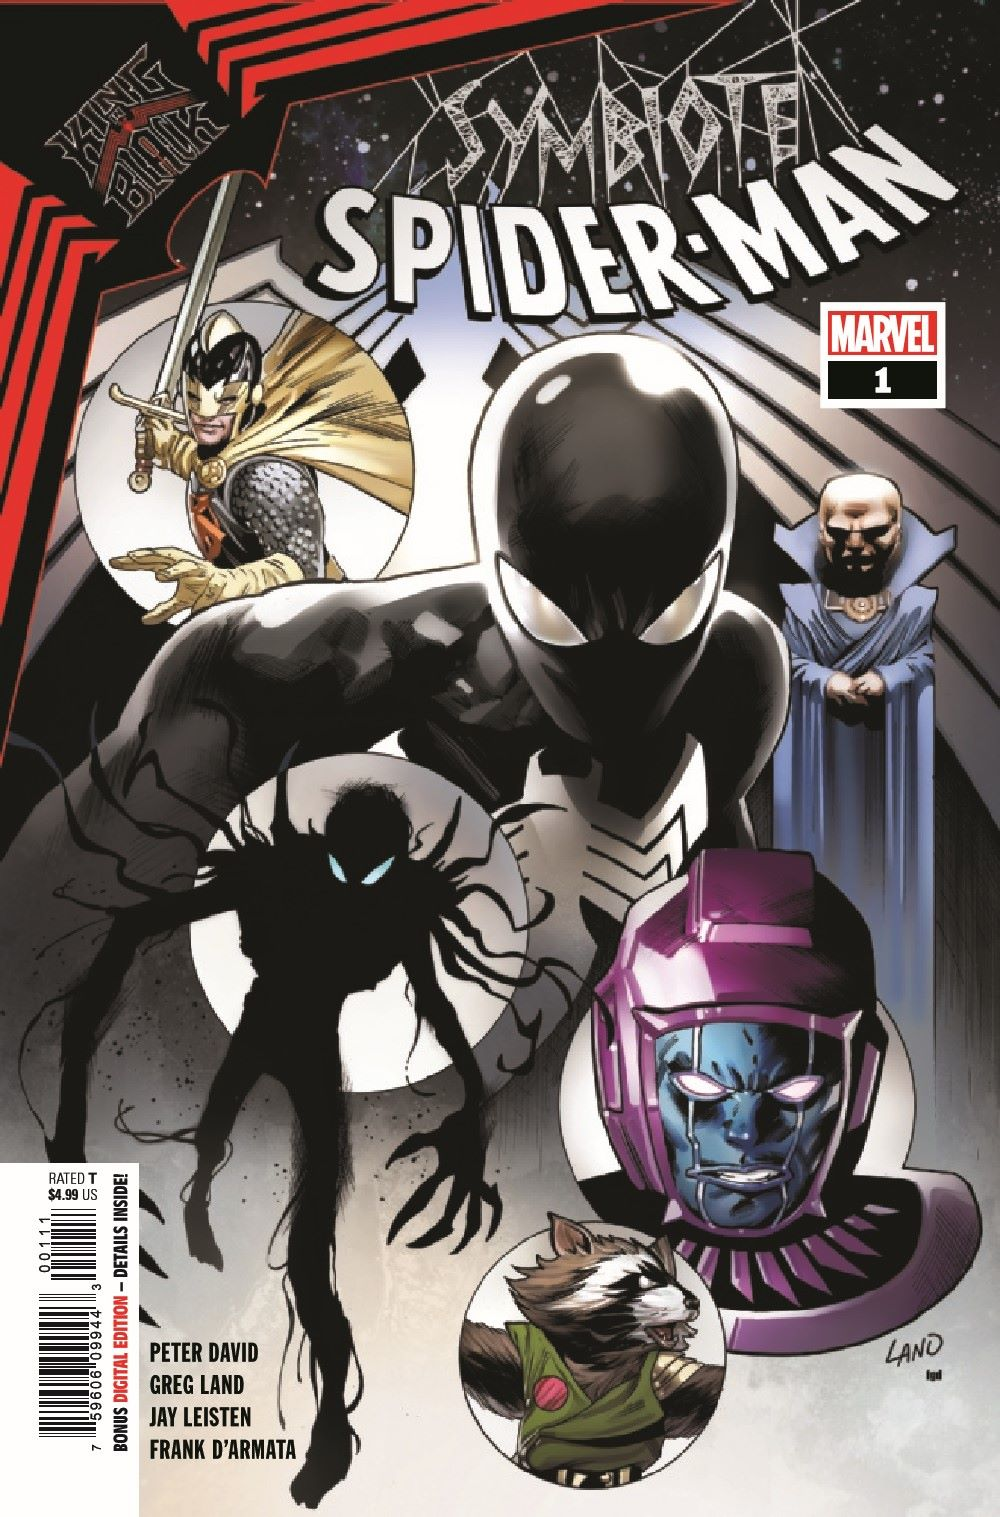 SYMBIOTESMKIB2020001_Preview-1 ComicList Previews: SYMBIOTE SPIDER-MAN KING IN BLACK #1 (OF 5)